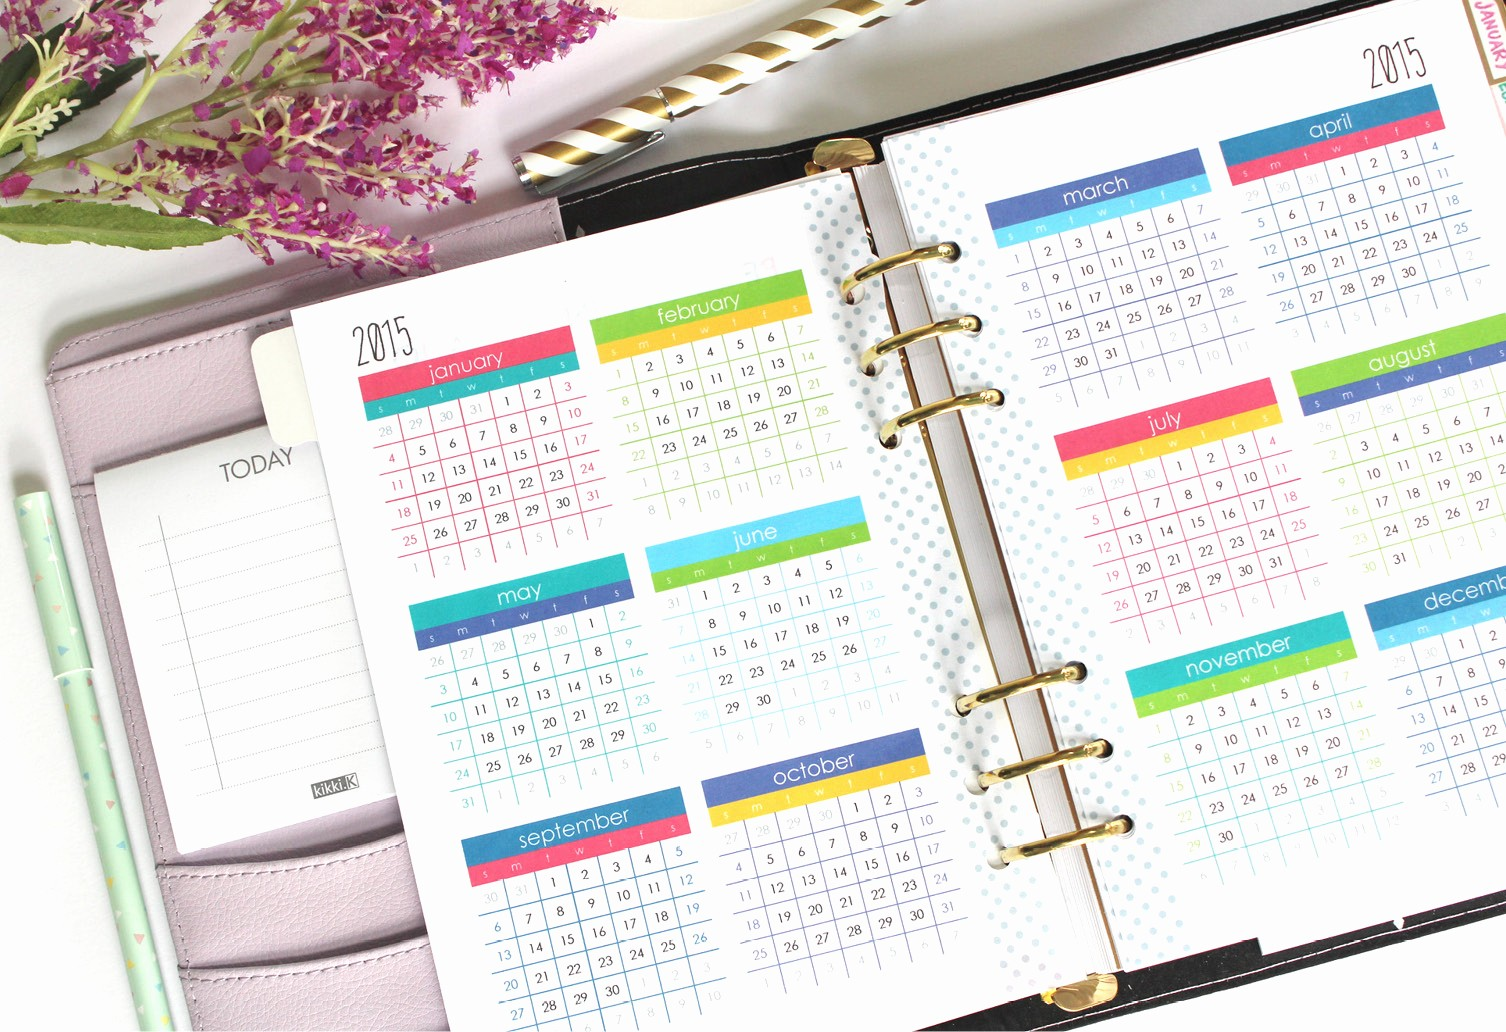 Free Printable Daily Calendar 2015 New 8 Best Of at A Glance Daily Planner Printable